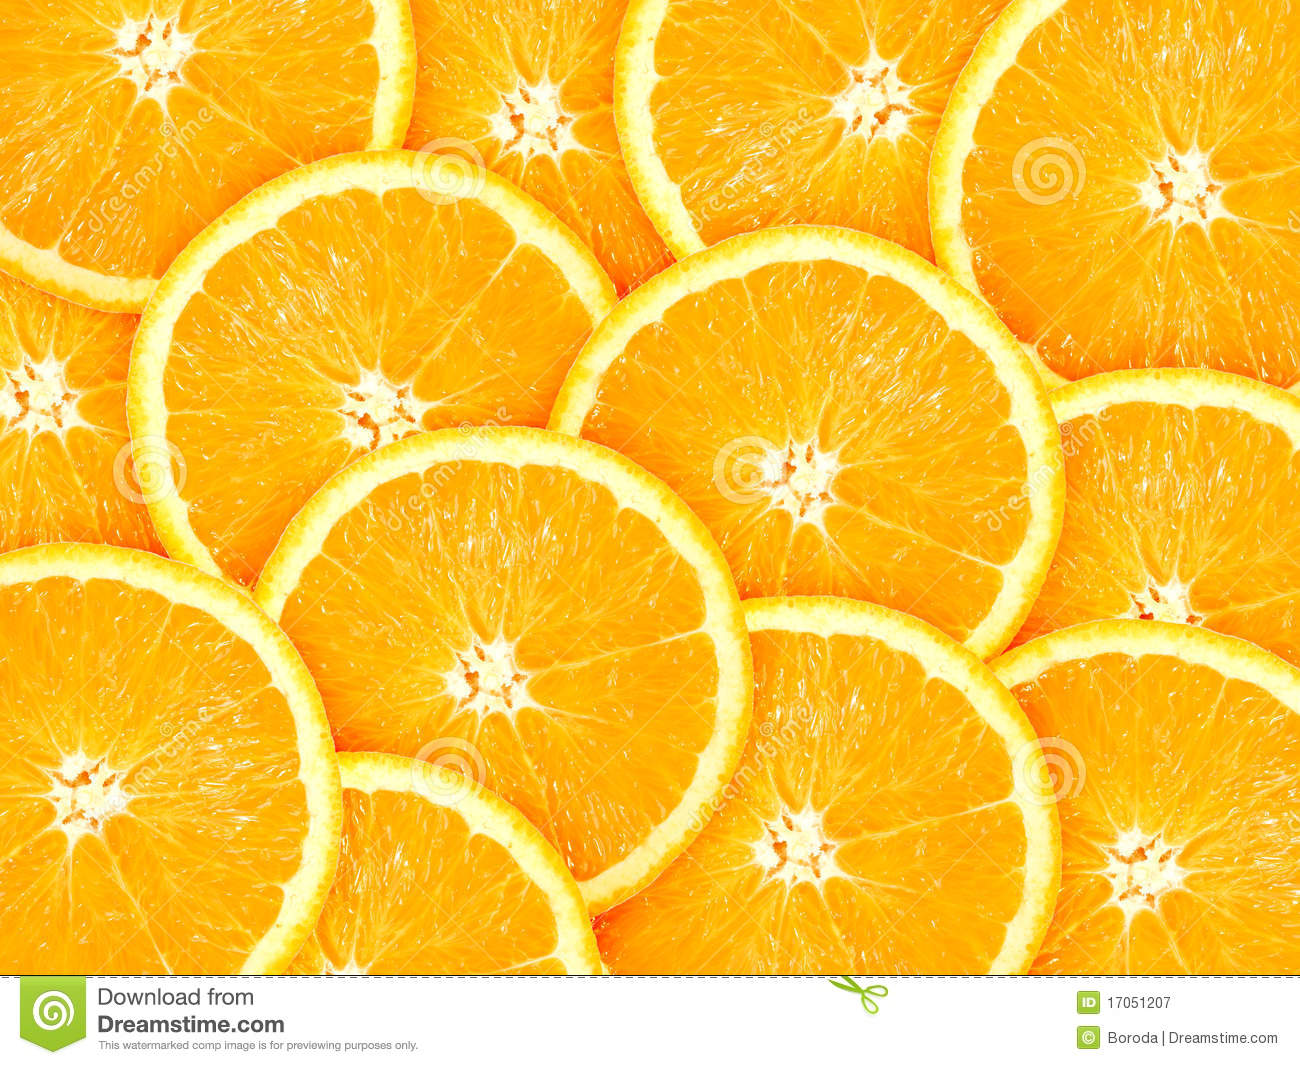 Background with citrus-fruit of orange slices